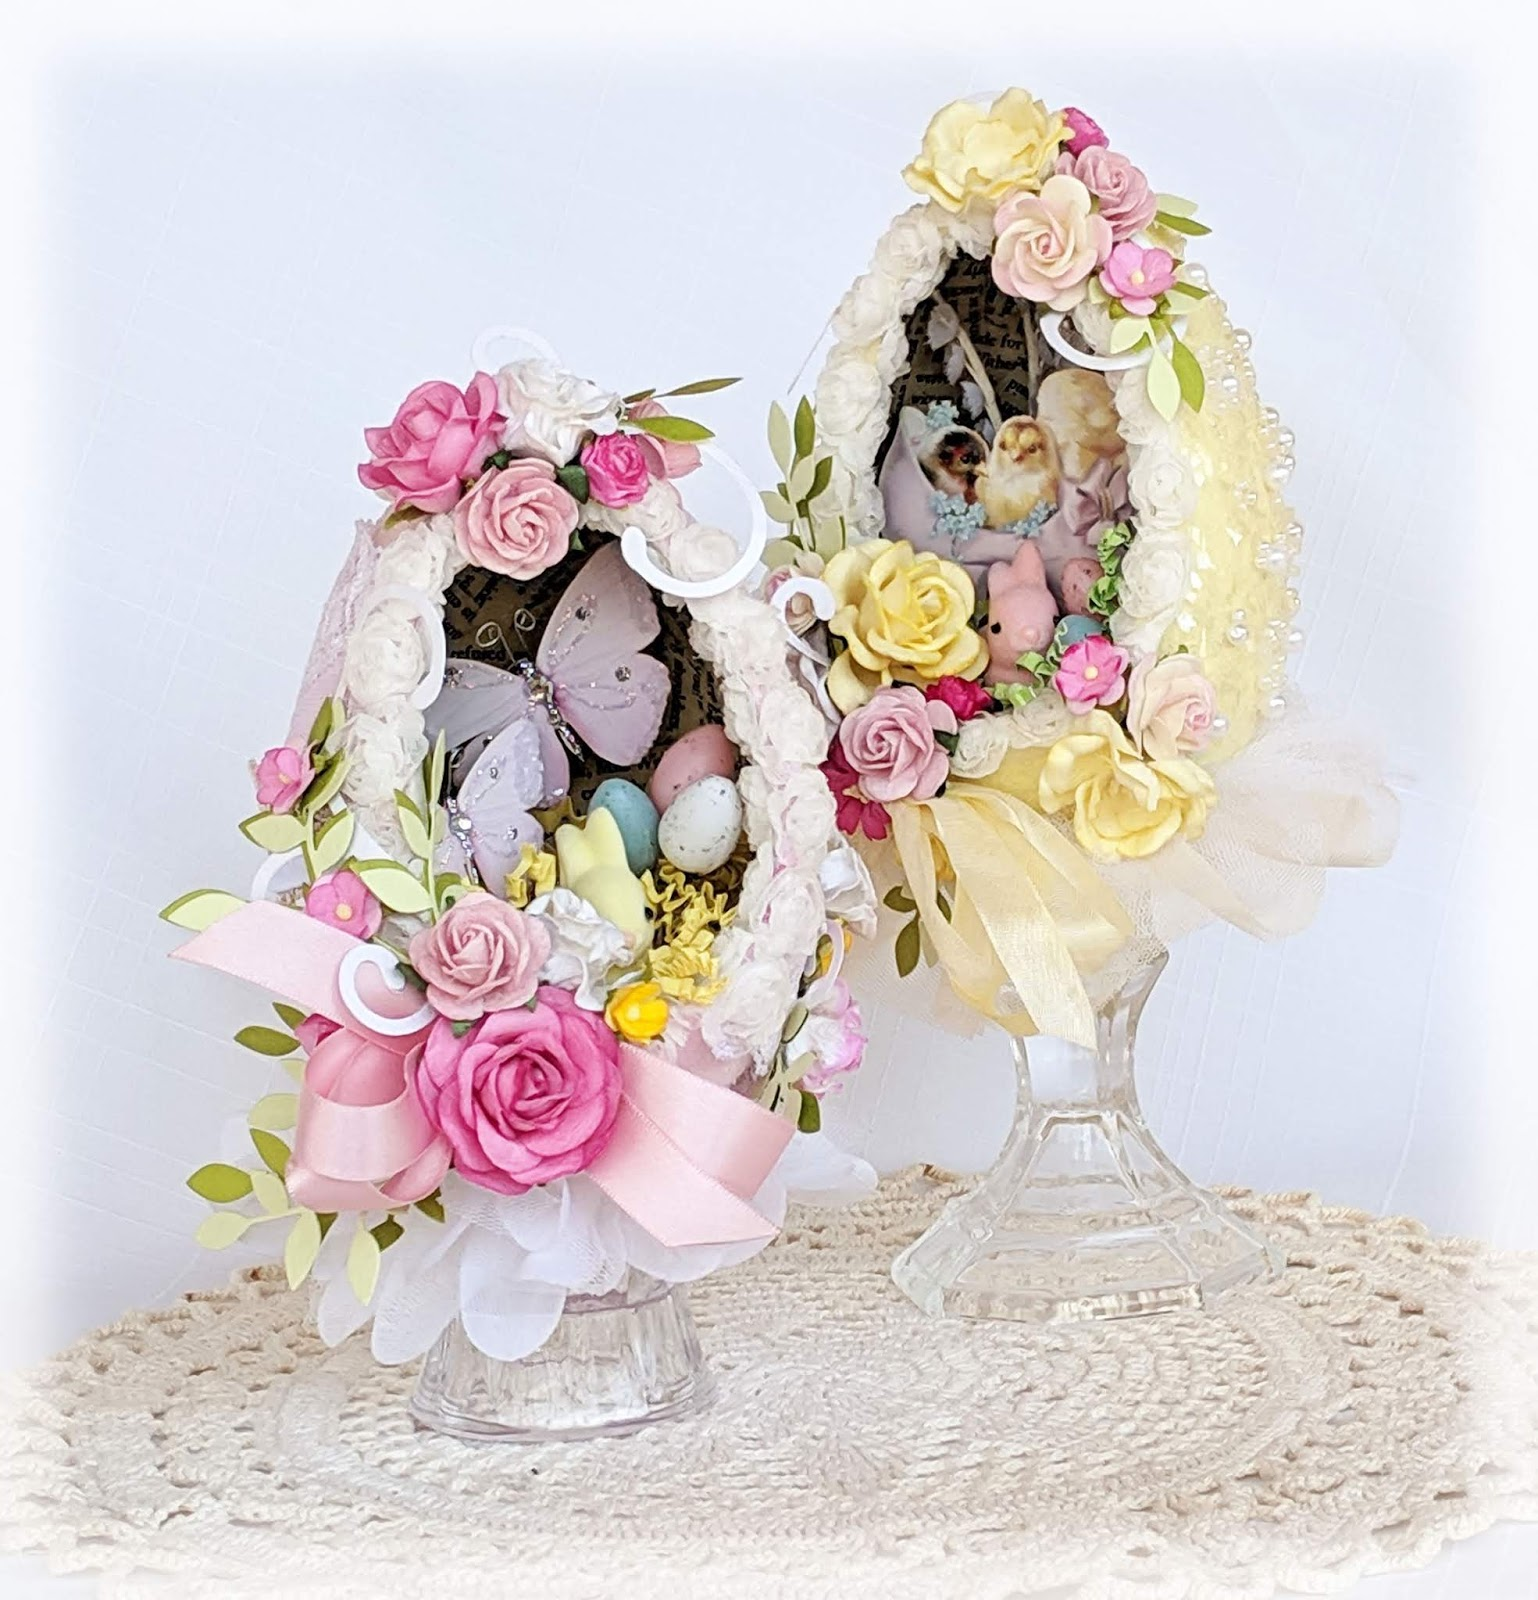 Terry's Scrapbooks: Decorated Easter diorama fairy eggs (2)